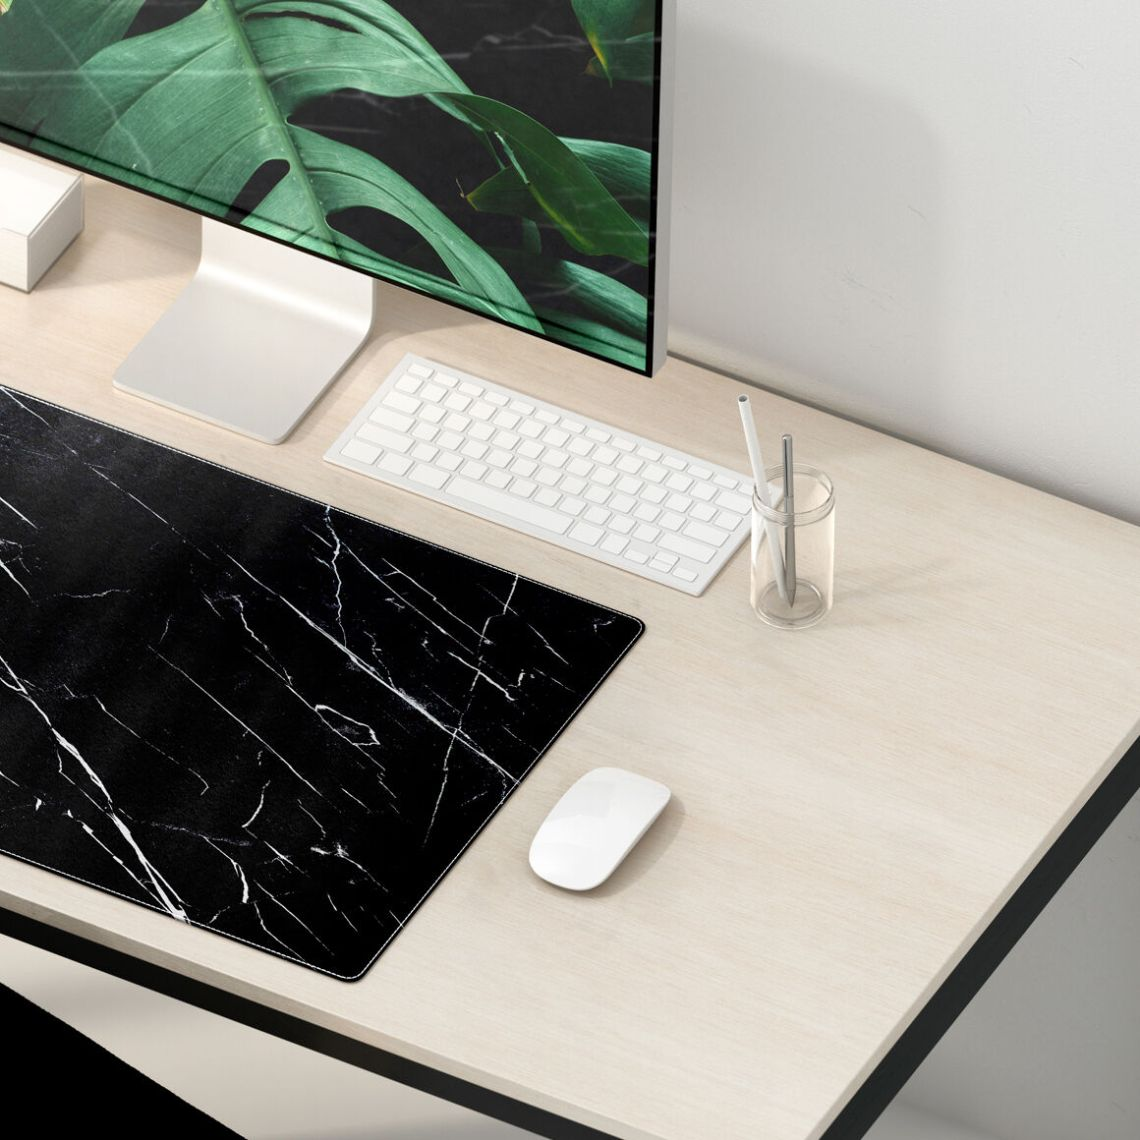 Download Mouse Pad Mockup Psd Free Download Yellow Images